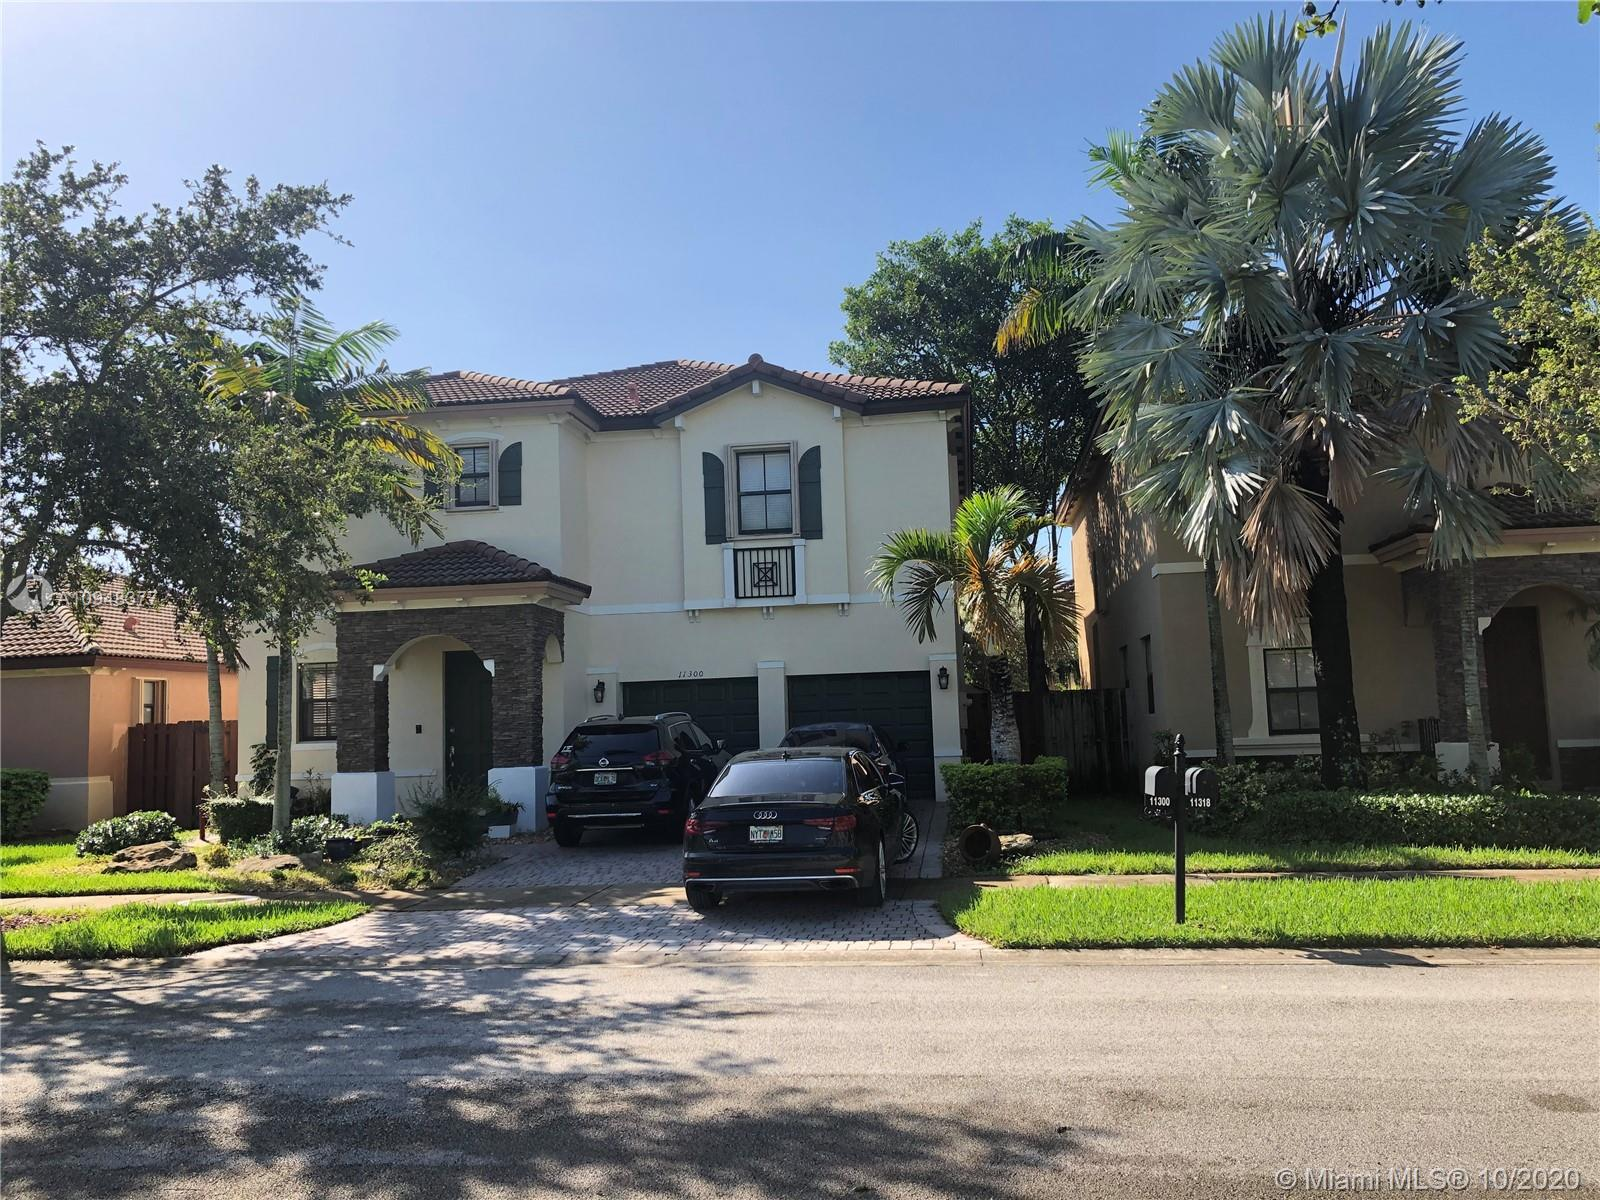 11300 SW 241st St Property Photo - Miami, FL real estate listing